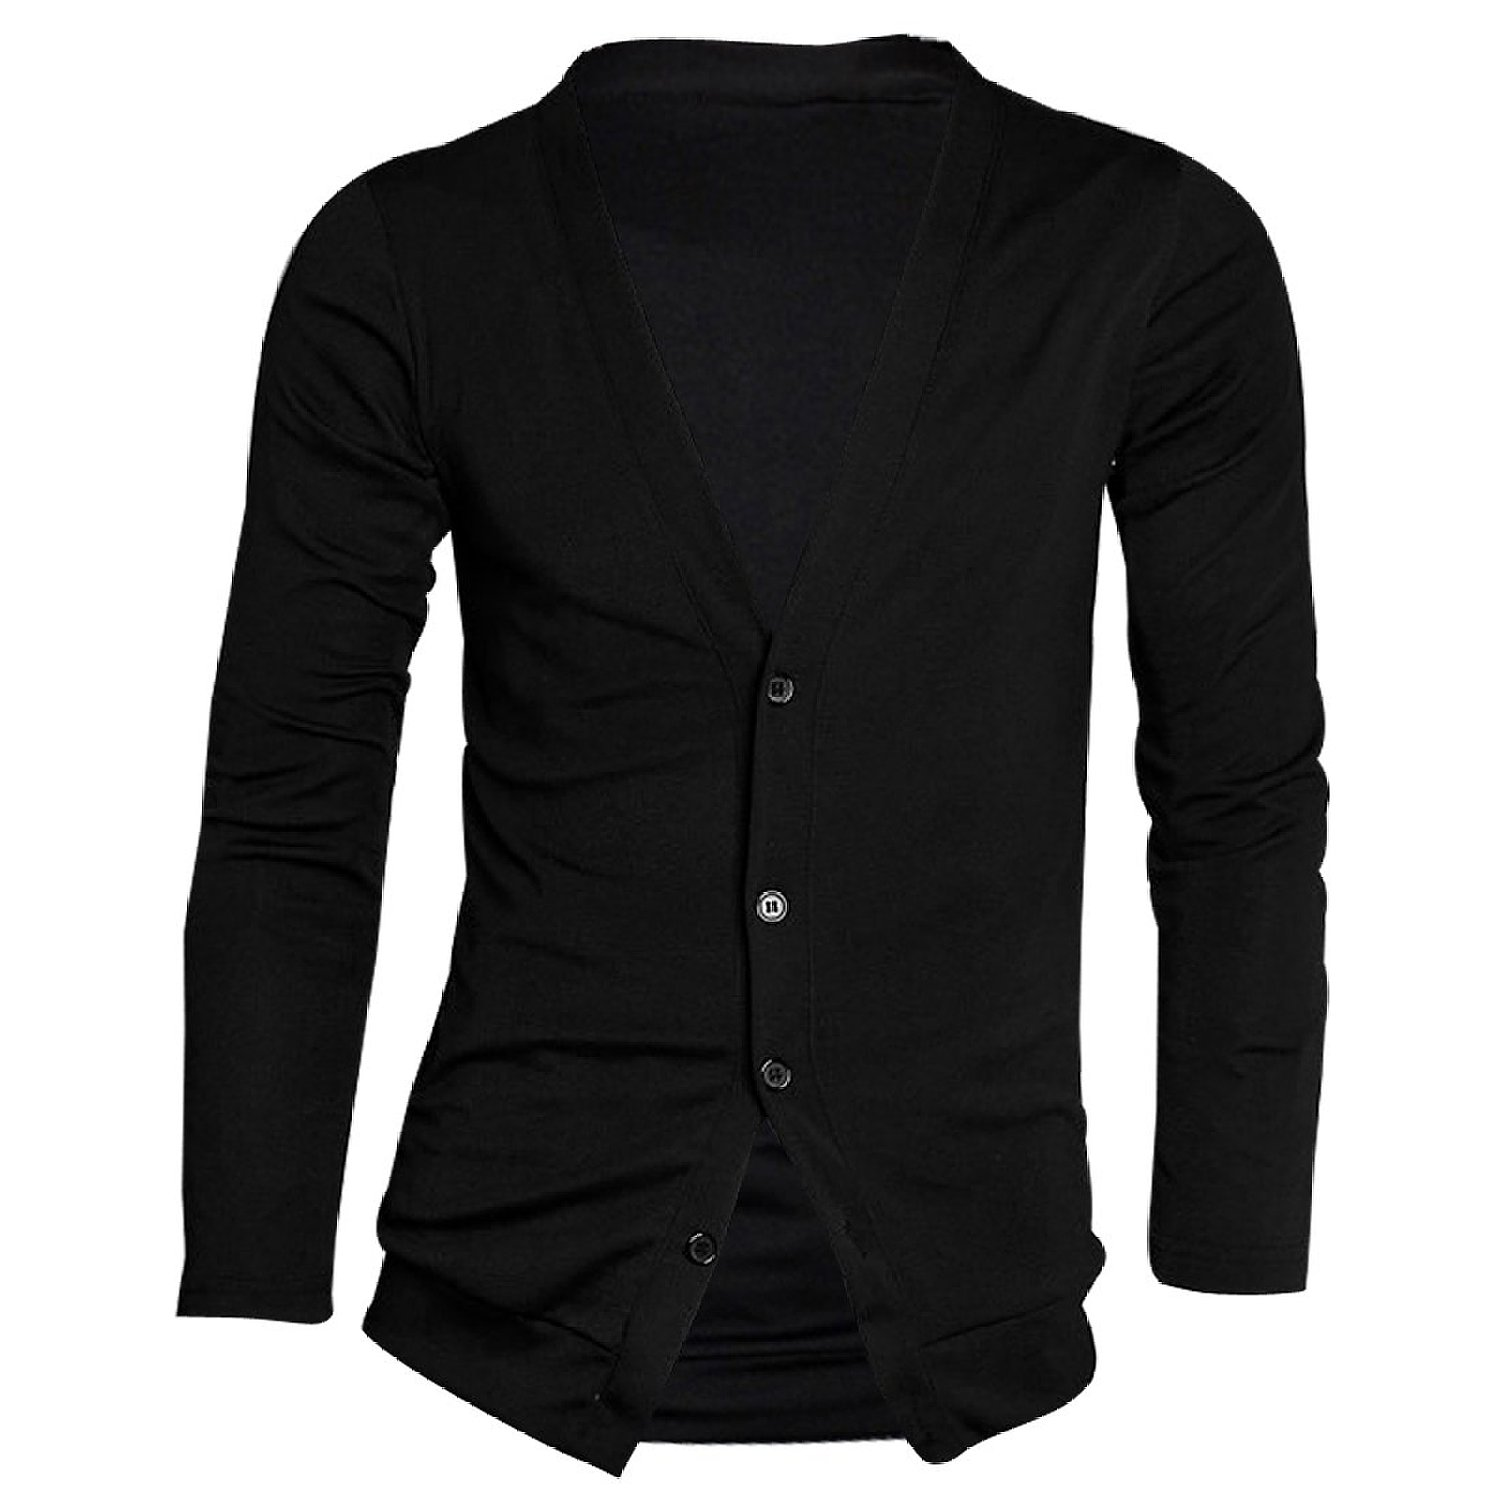 qepae MALL Men Long Sleeve Casual Slim Button Cardigans